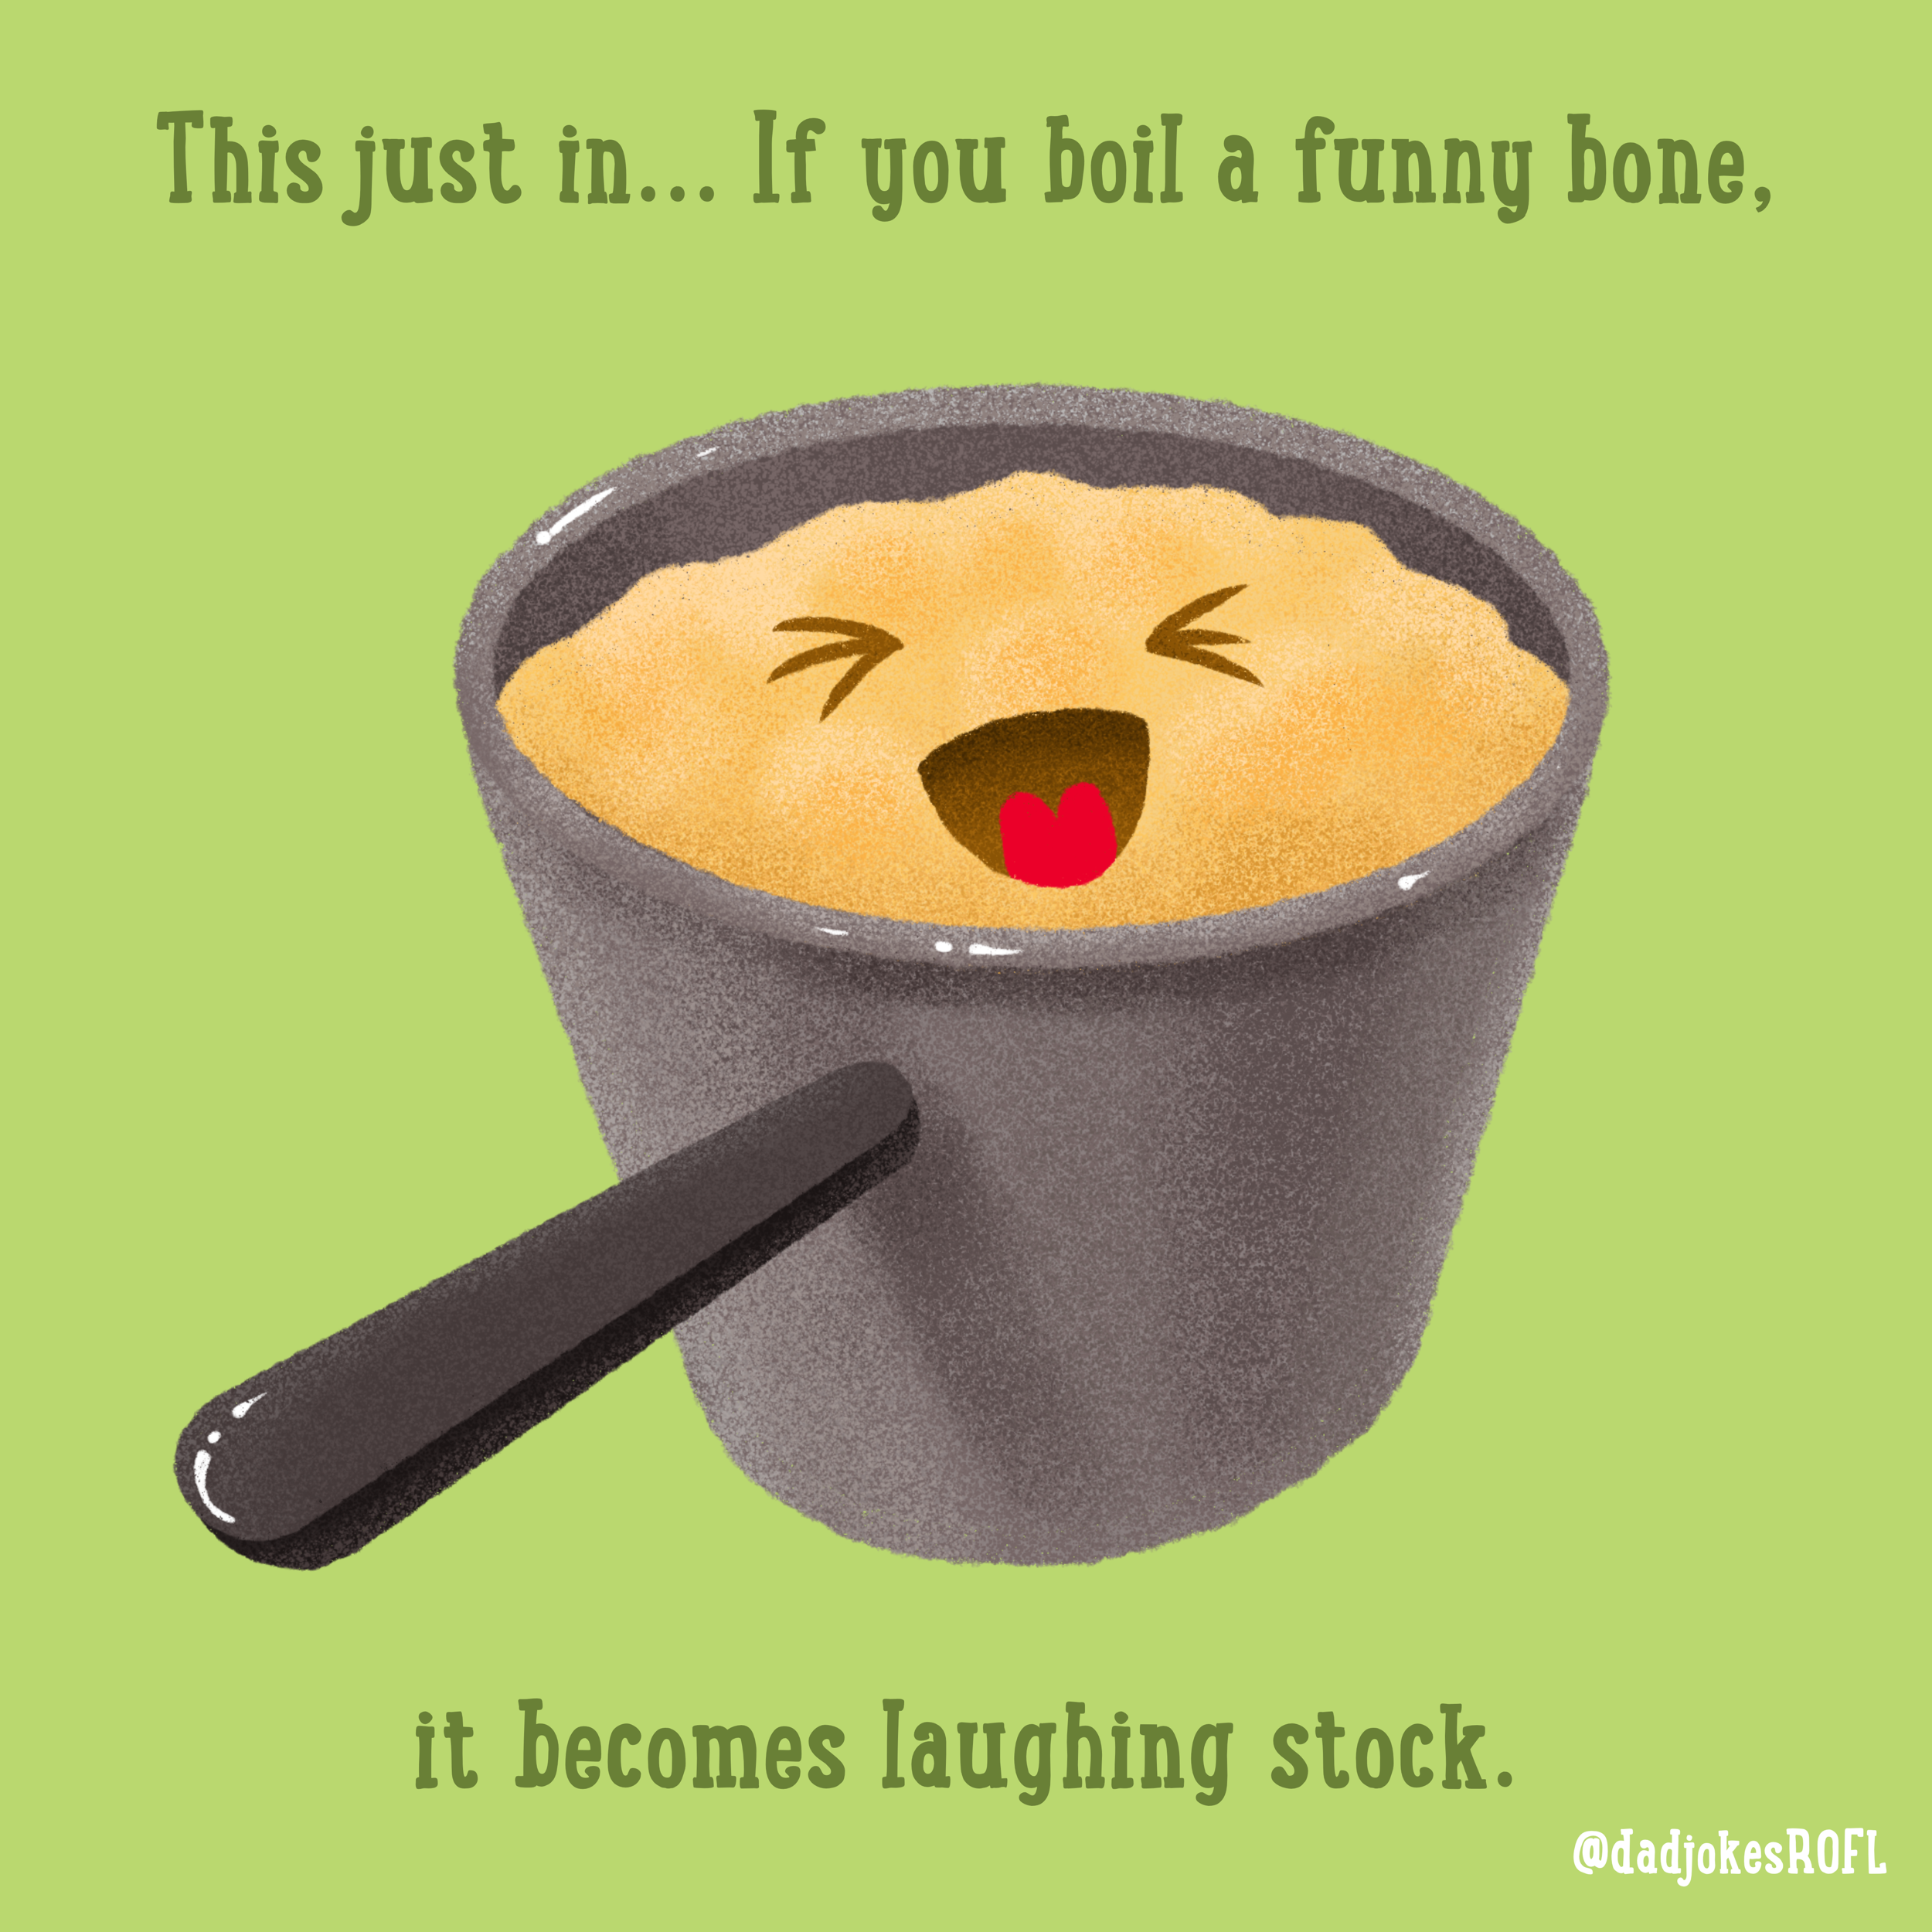 This just in... If you boil a funny bone,  it becomes laughing stock.